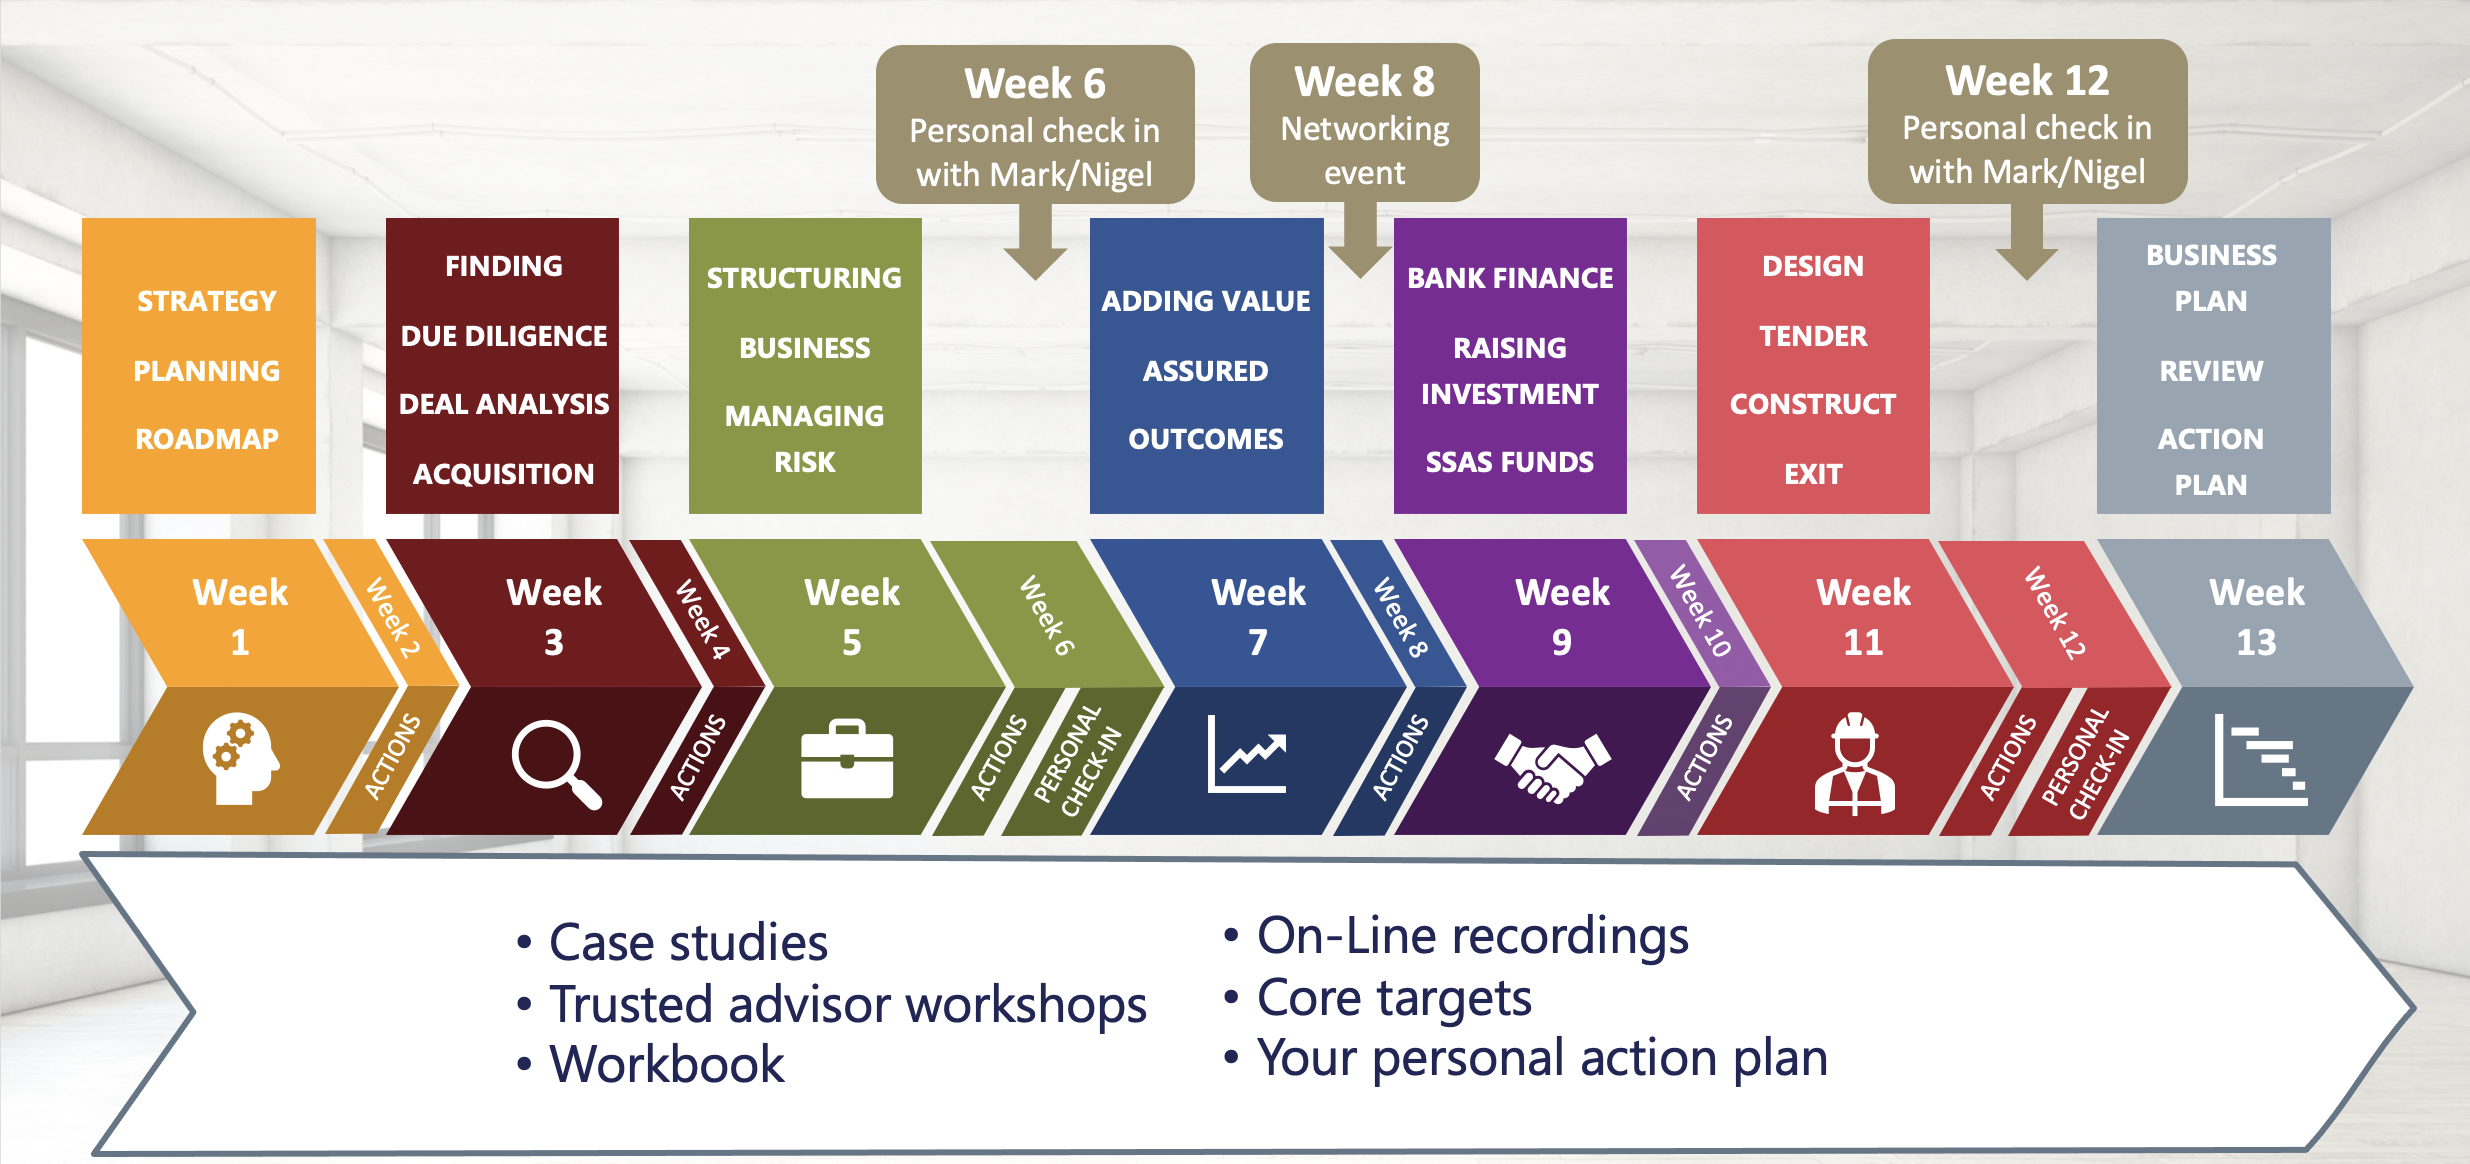 13 Week Property Investment Course Schedule